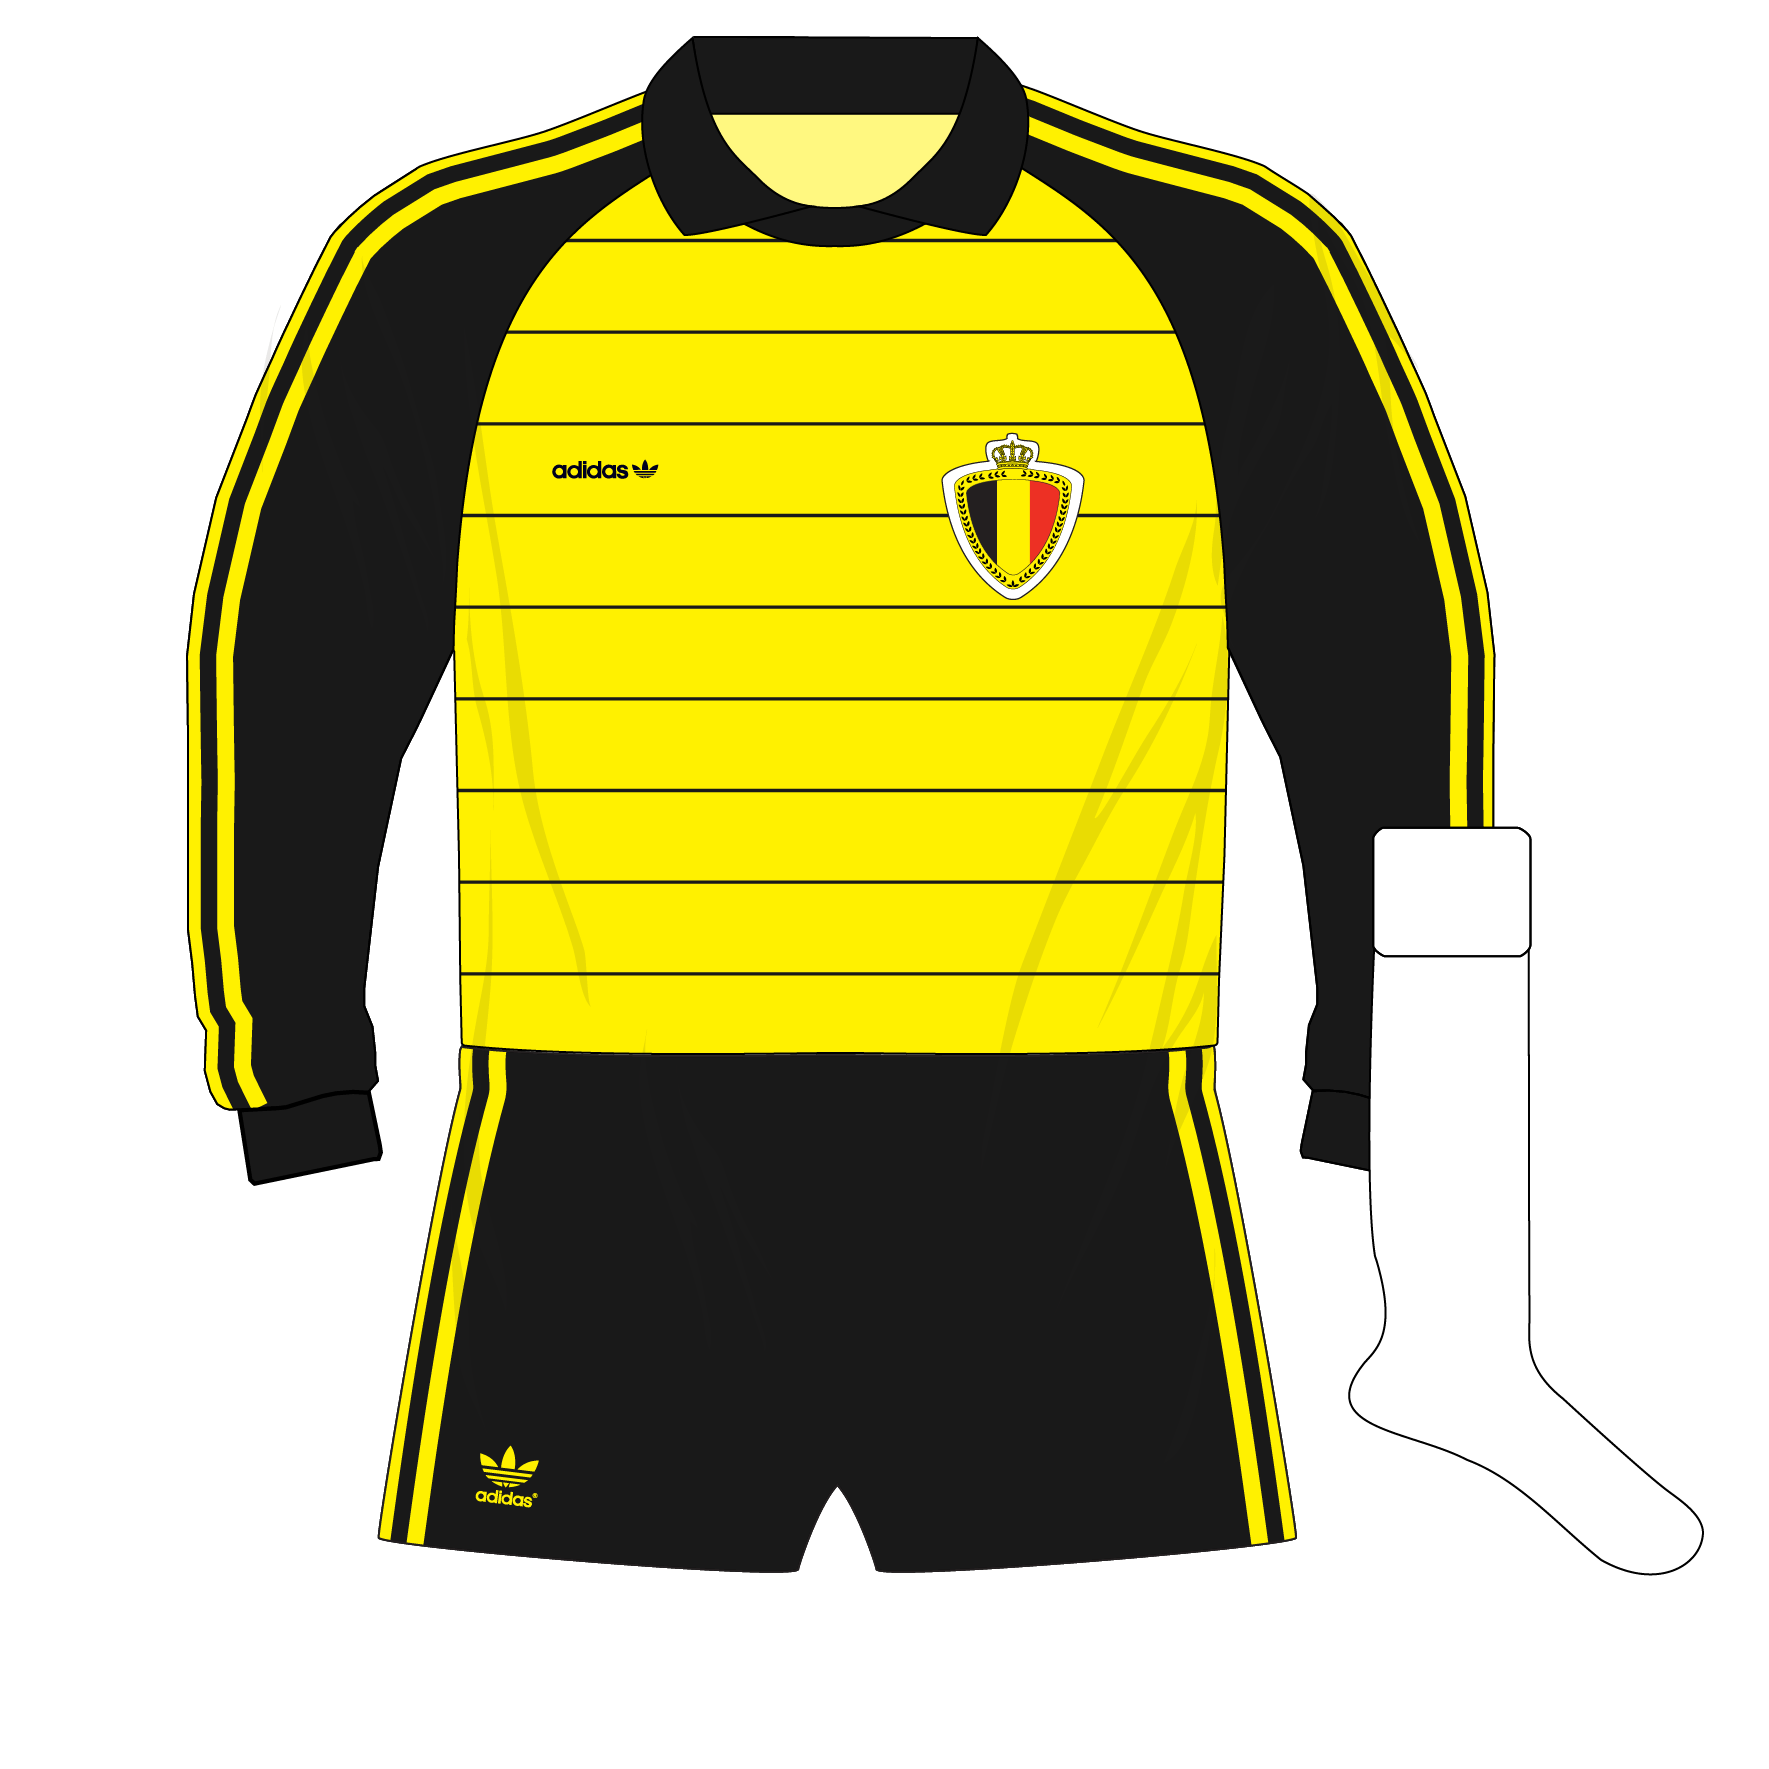 adidas-Belgium-yellow-goalkeeper-shirt-jersey-1982-Preud'homme